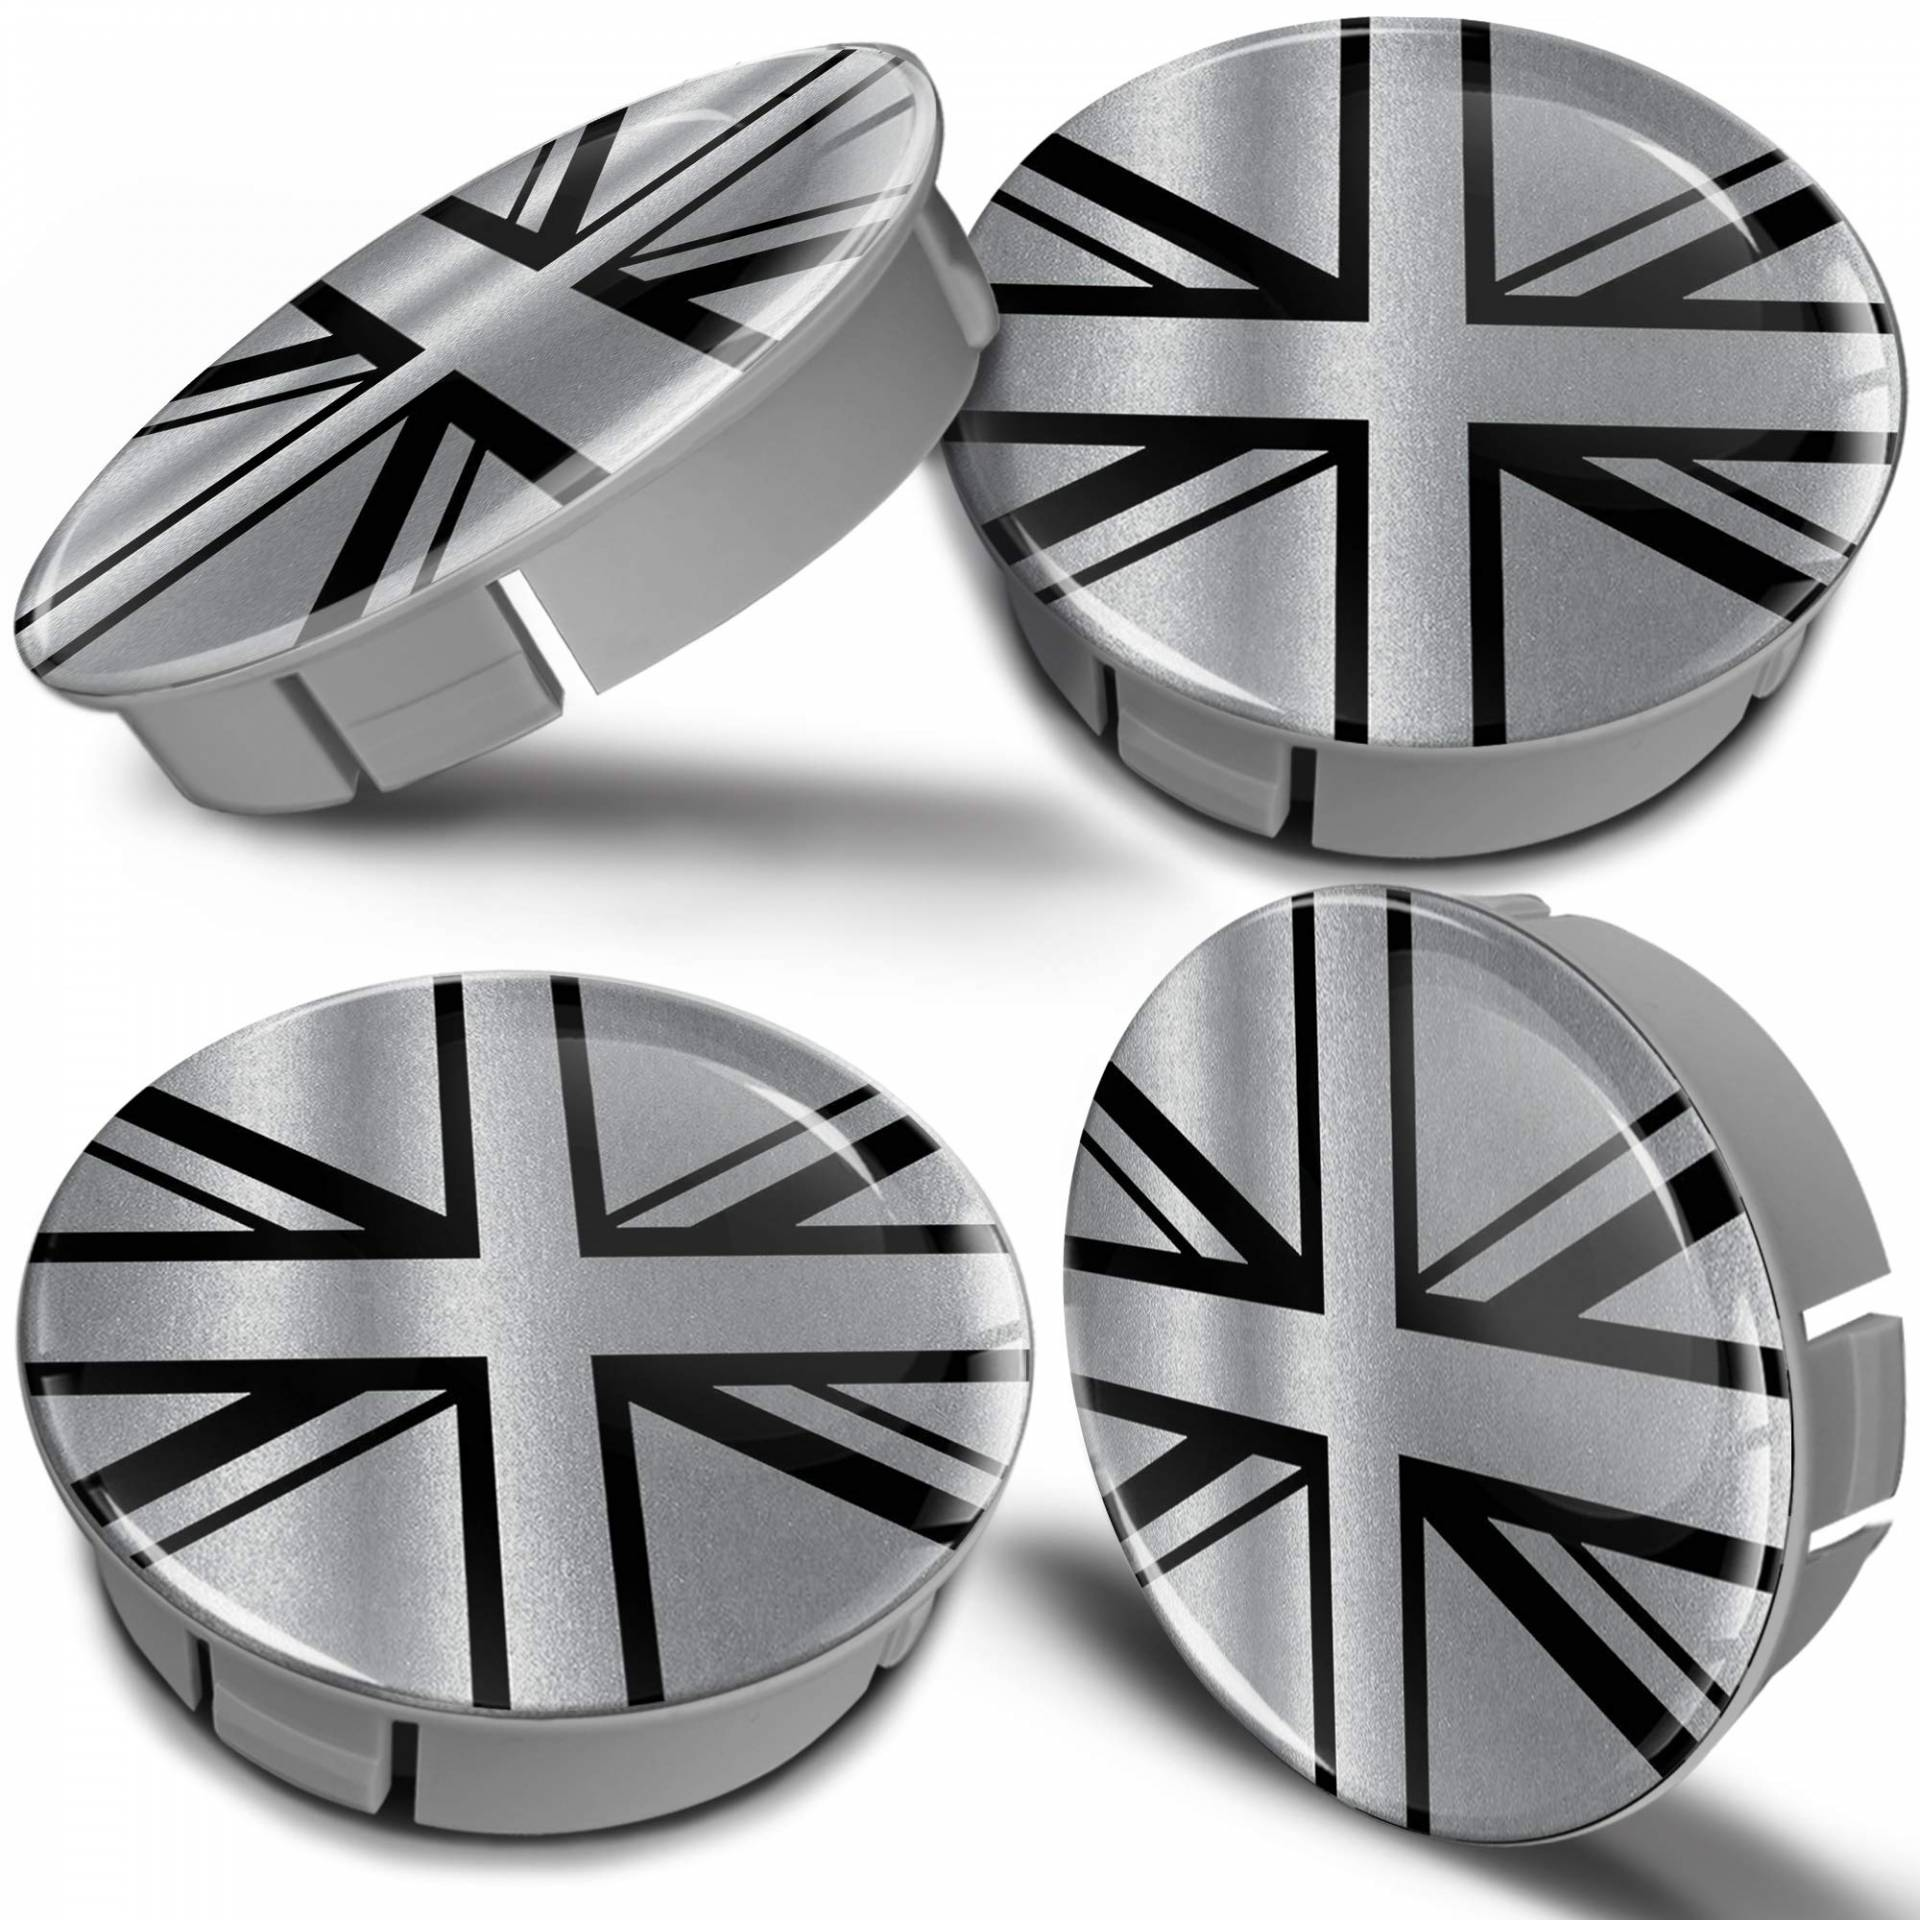 Biomar Labs® 4 x 60mm Kunststoff Nabenkappen Kappen UK Union Jack GB United Kingdom Flagge Fahne Silber Schwarz Felgendeckel Radkappen Radnabendeckel Nabendeckel Auto Tuning CS 19 von Biomar Labs